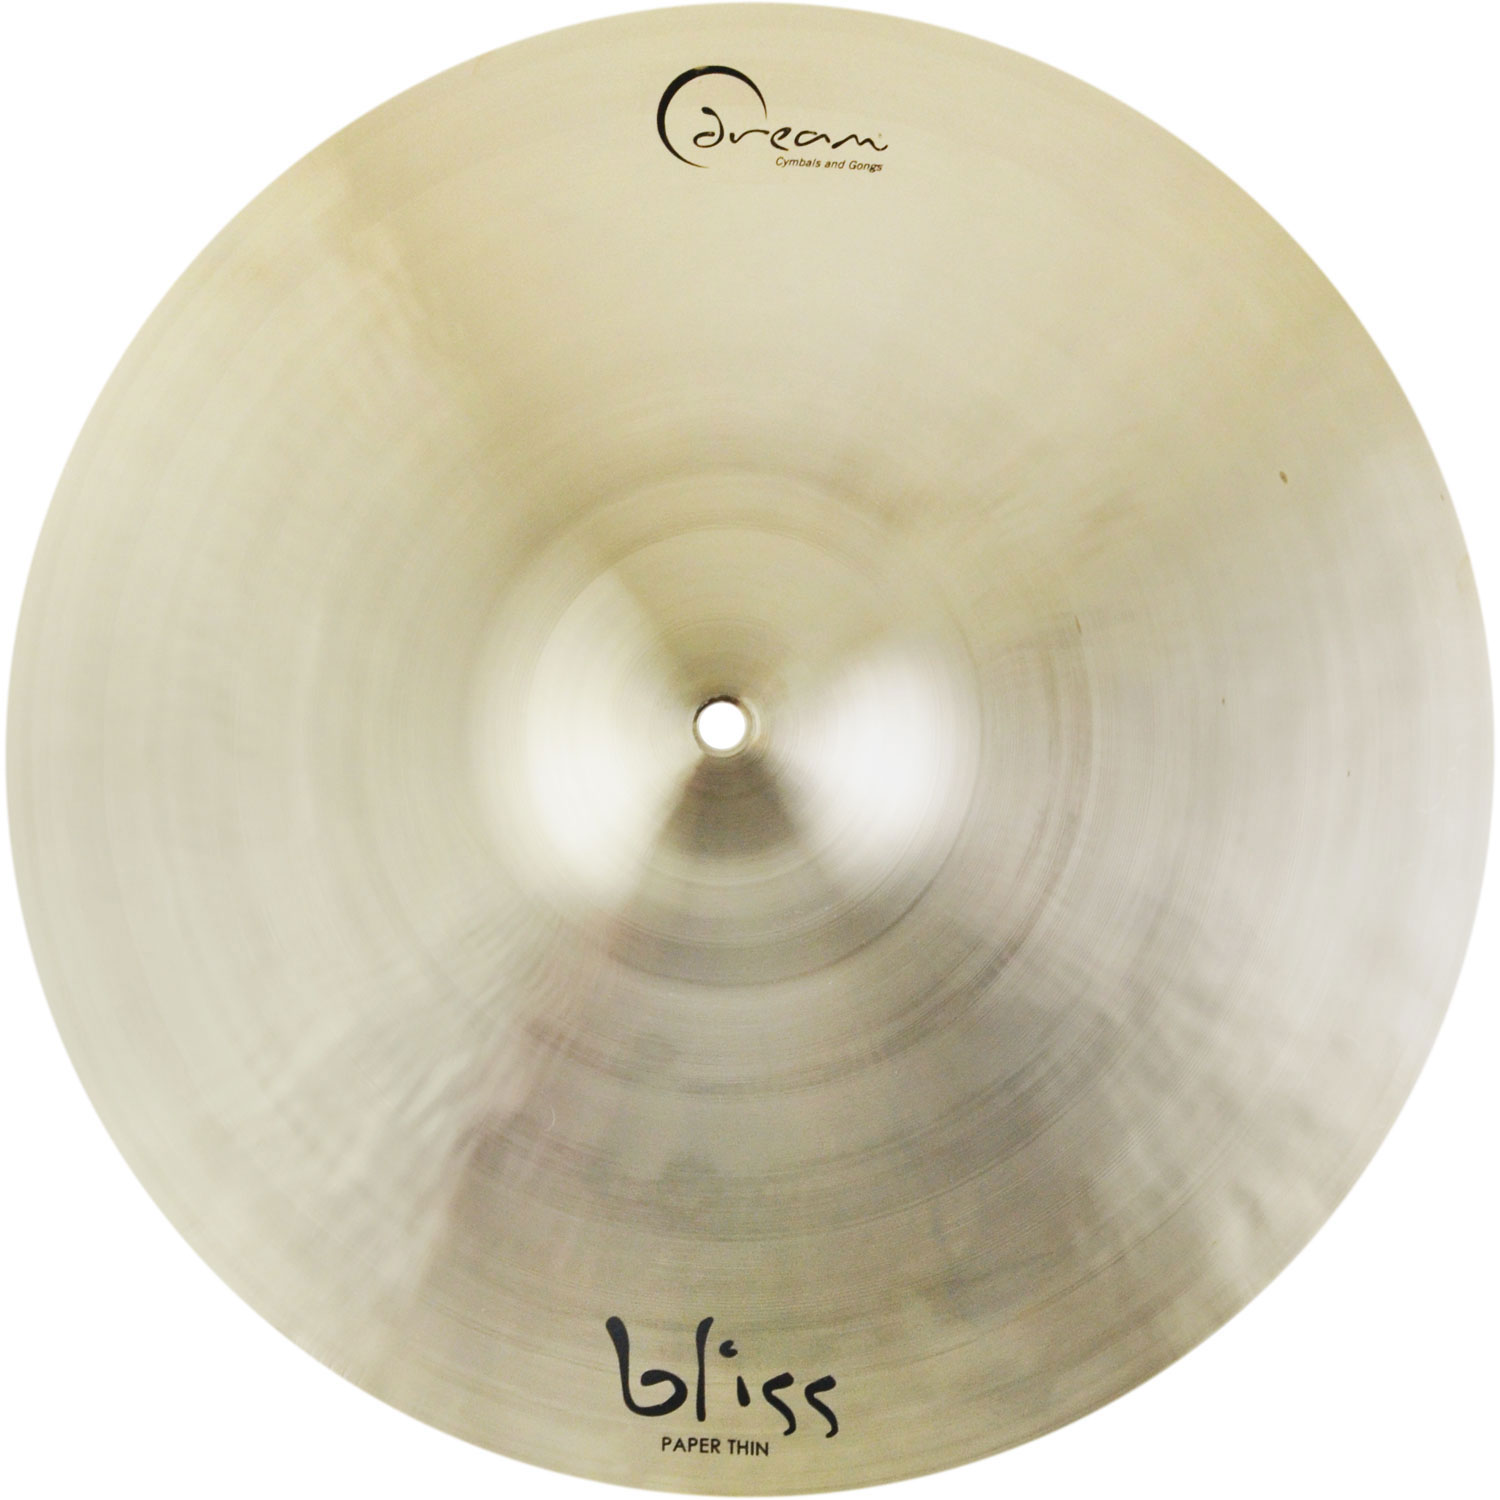 "Dream Bliss Series 19"" Paper Thin Crash Cymbal"